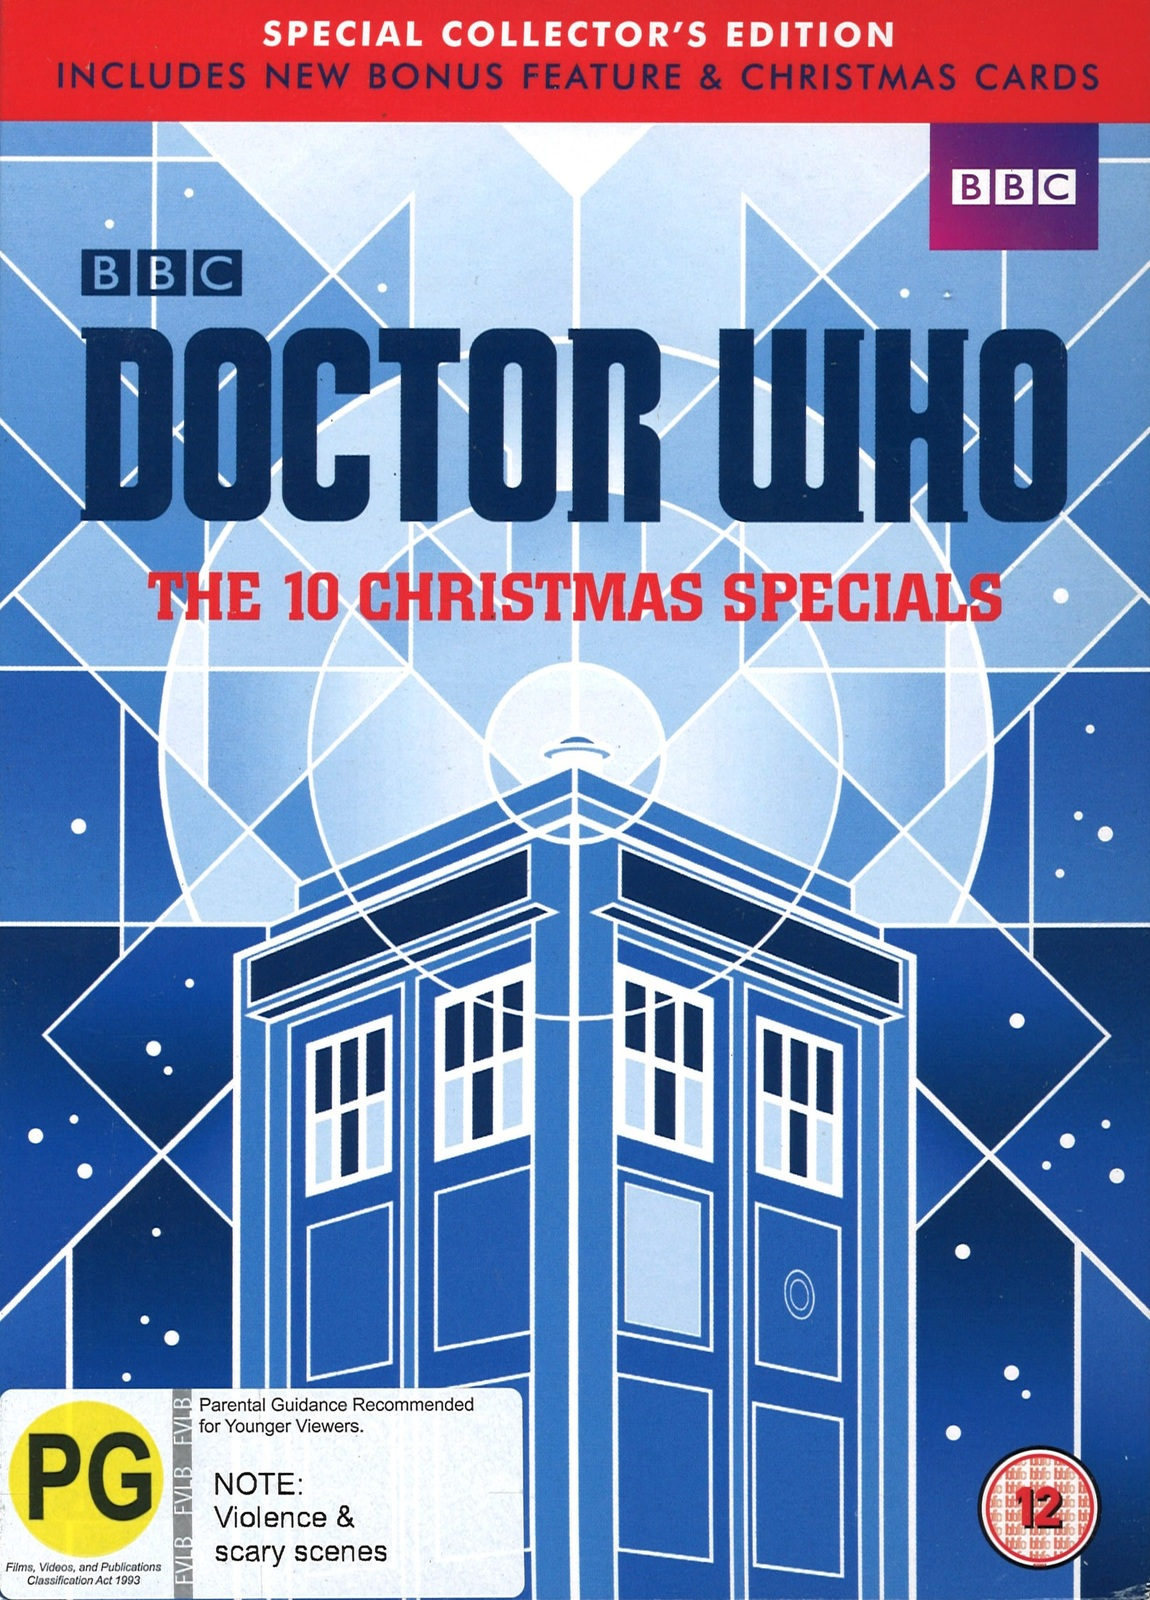 Doctor Who Christmas Cards.Doctor Who The 10 Christmas Specials Special Collectors Edition